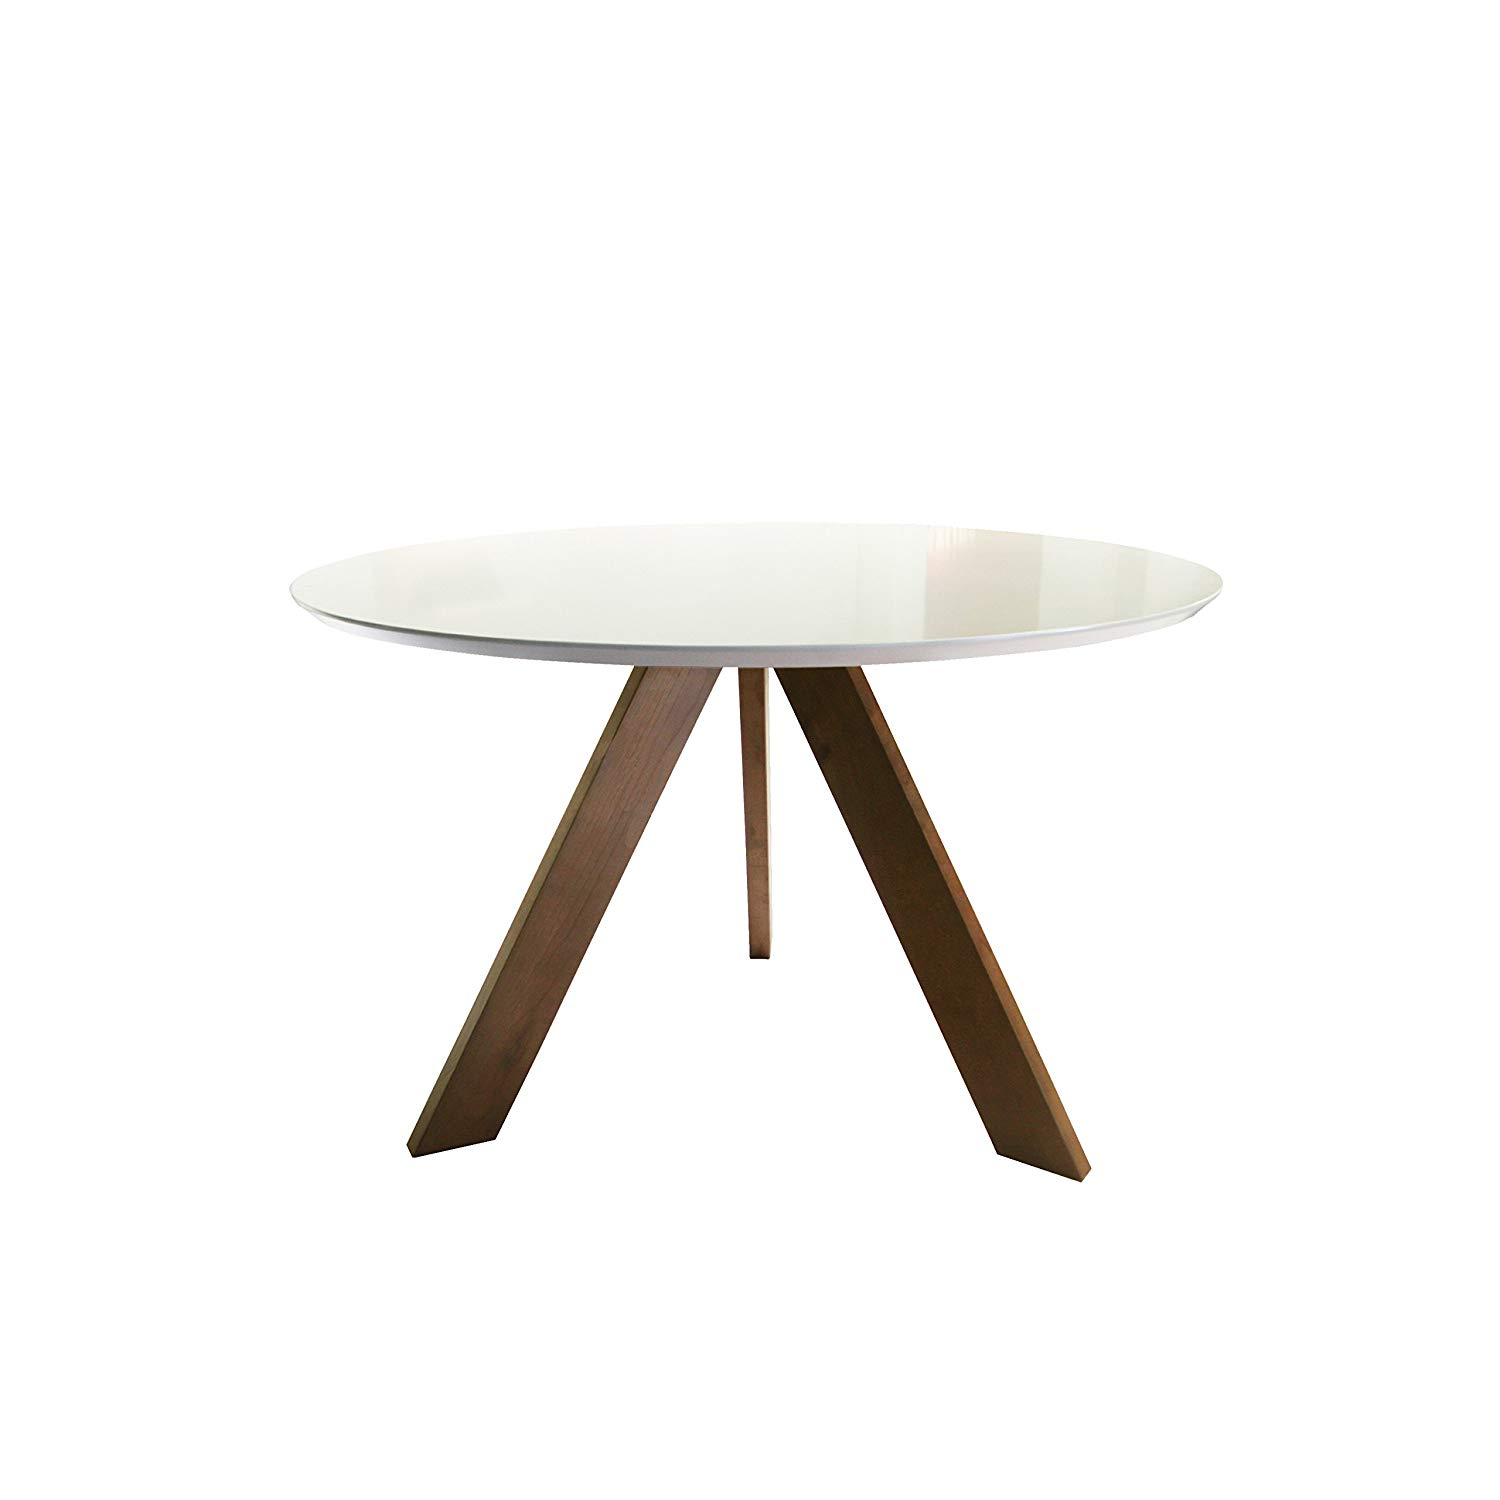 carabelle table matte white teak tables target scalloped accent curved mirrored bedside farmhouse with leaf round coffee toronto entryway furniture tablecloth measurements solid